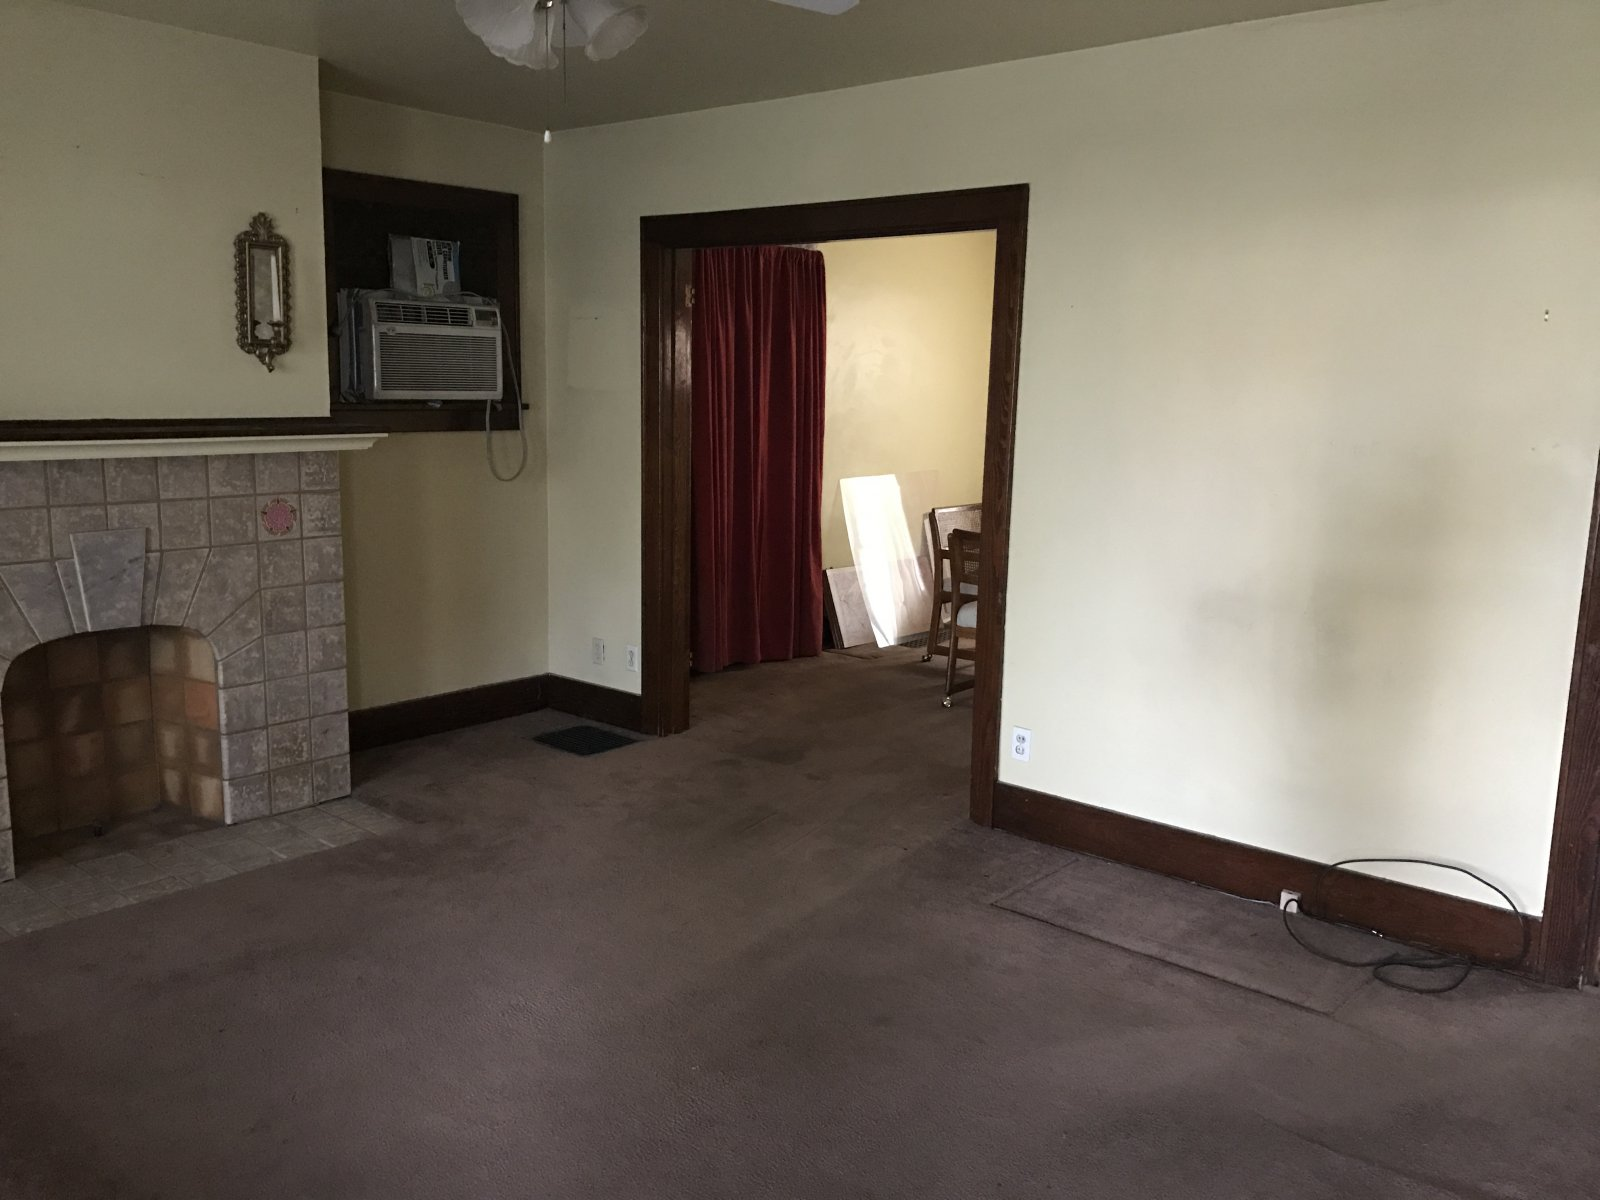 3BR/1BA at 2406 Banker is one of our Homes for Rent in McKeesport, PA